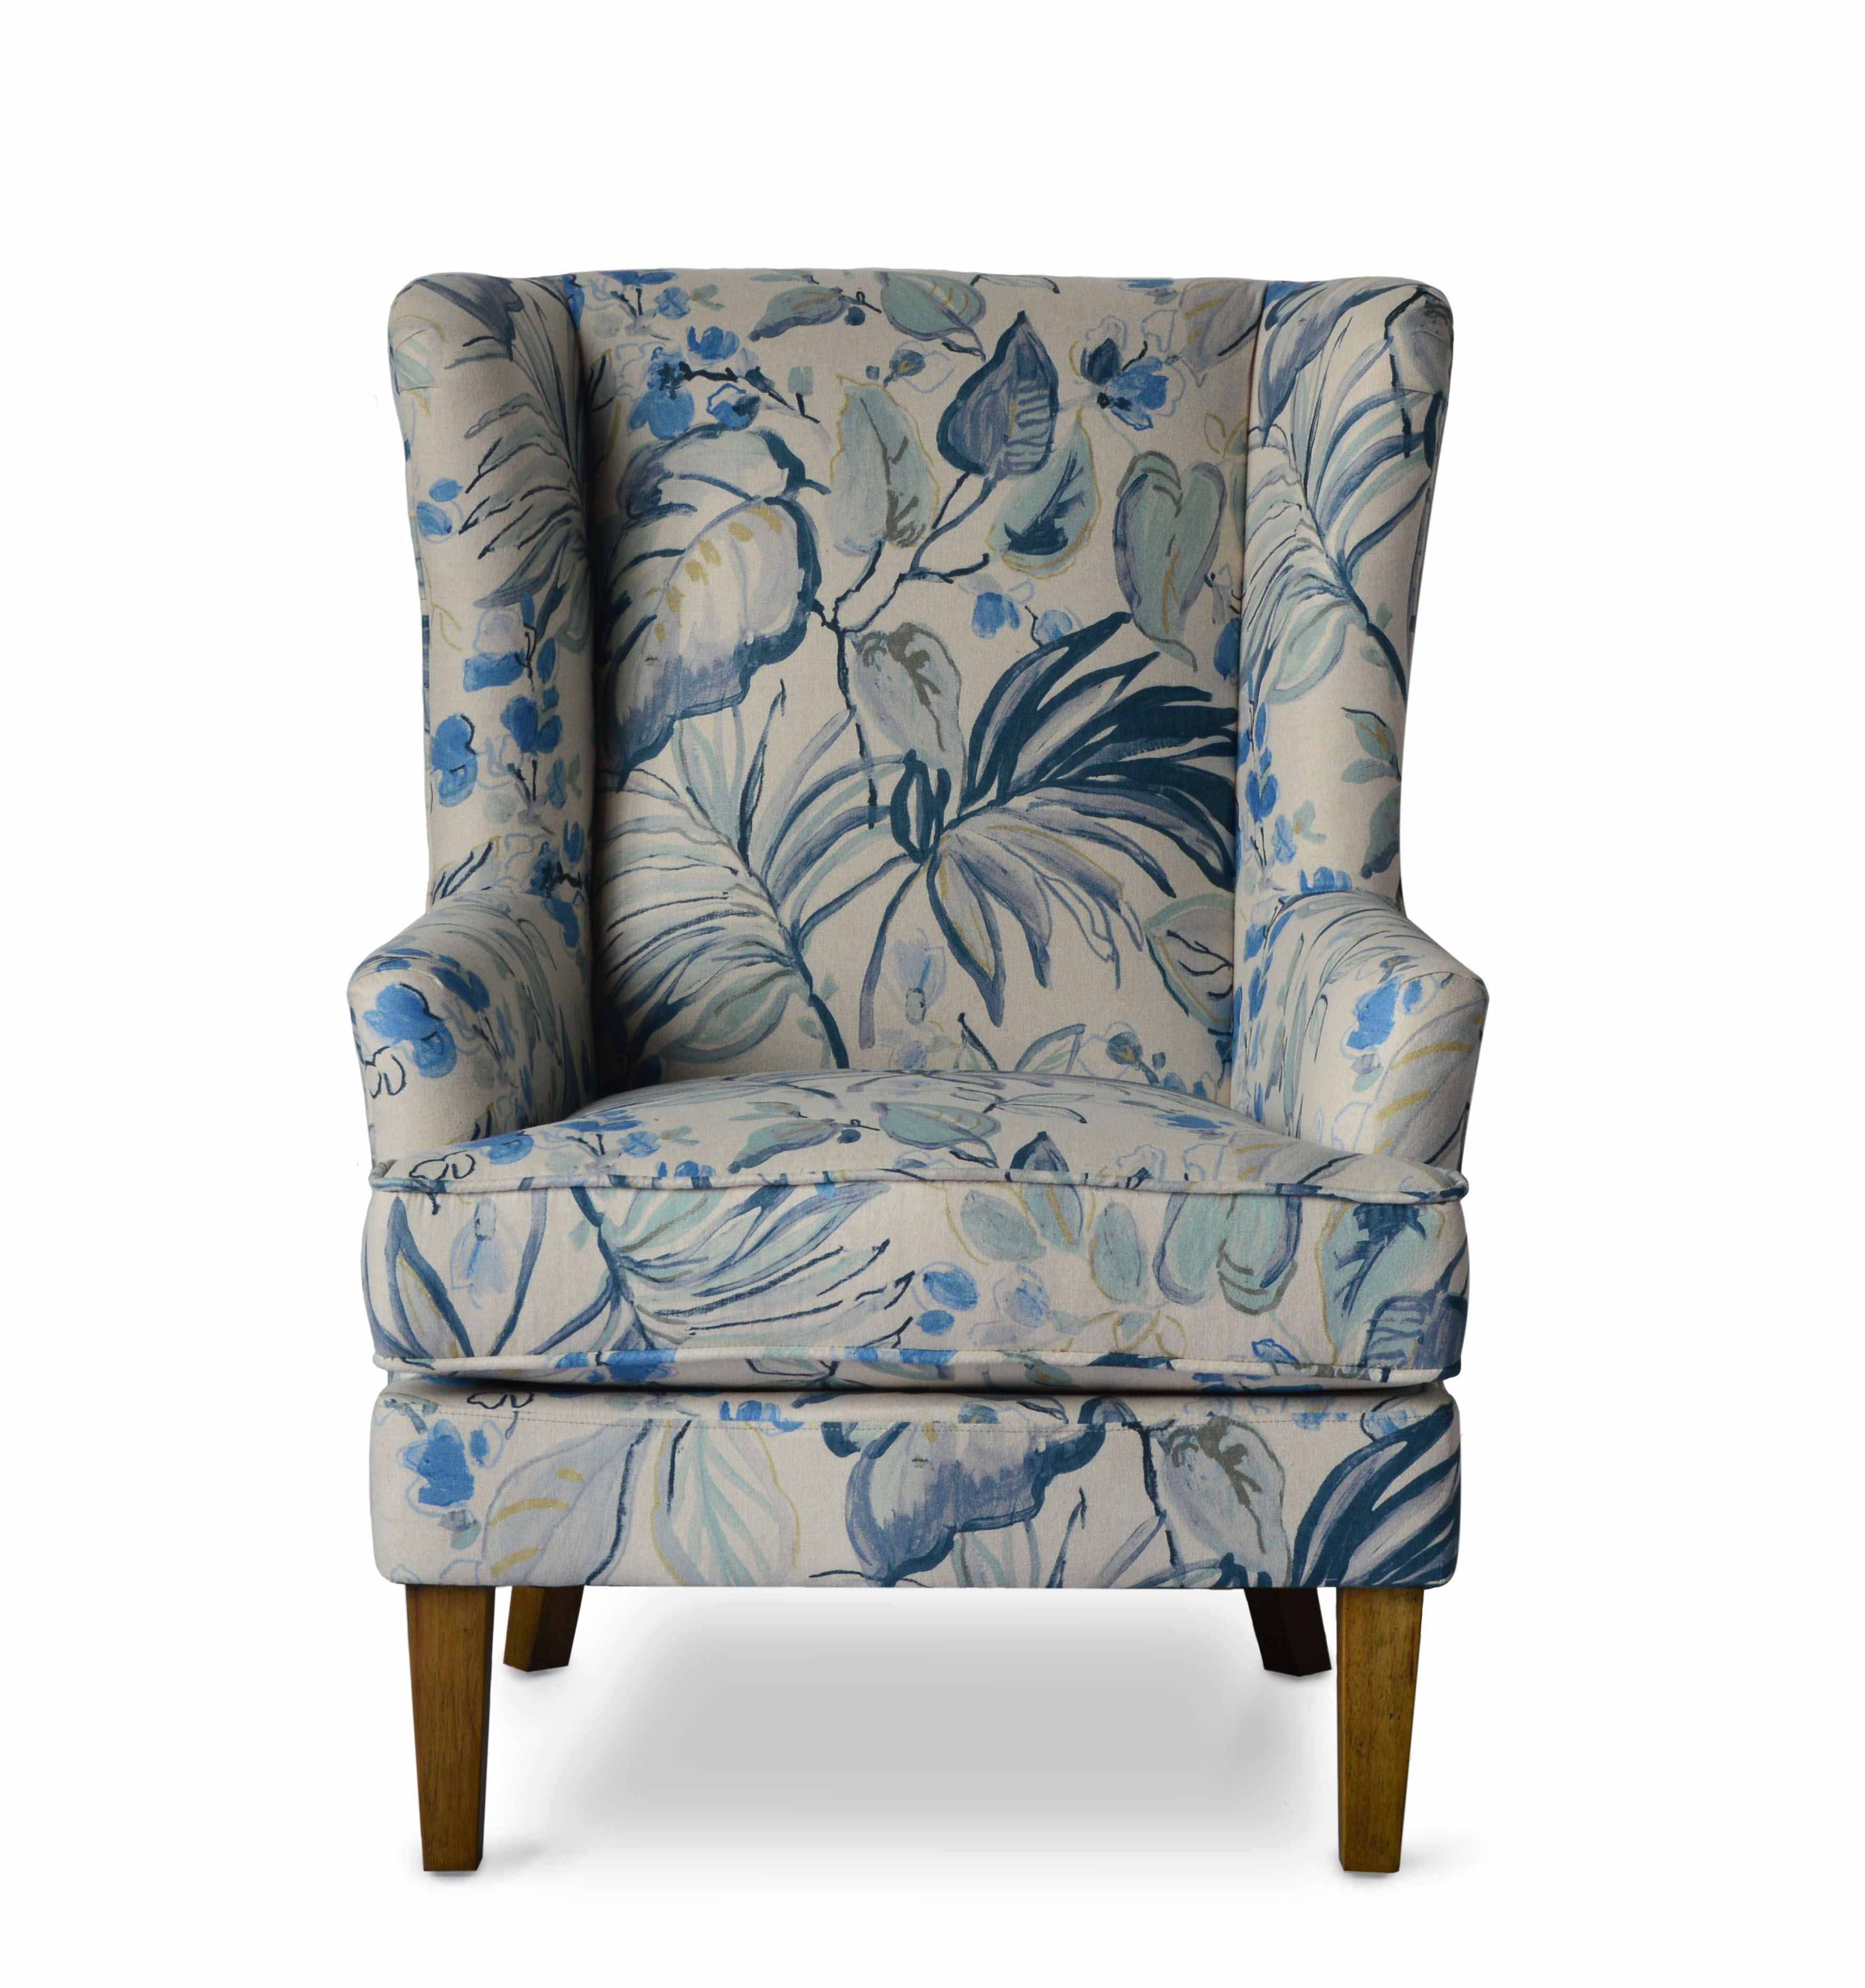 Terrific Jofran Furniture Gabriela Blue Accent Chair The Classy Home Gamerscity Chair Design For Home Gamerscityorg